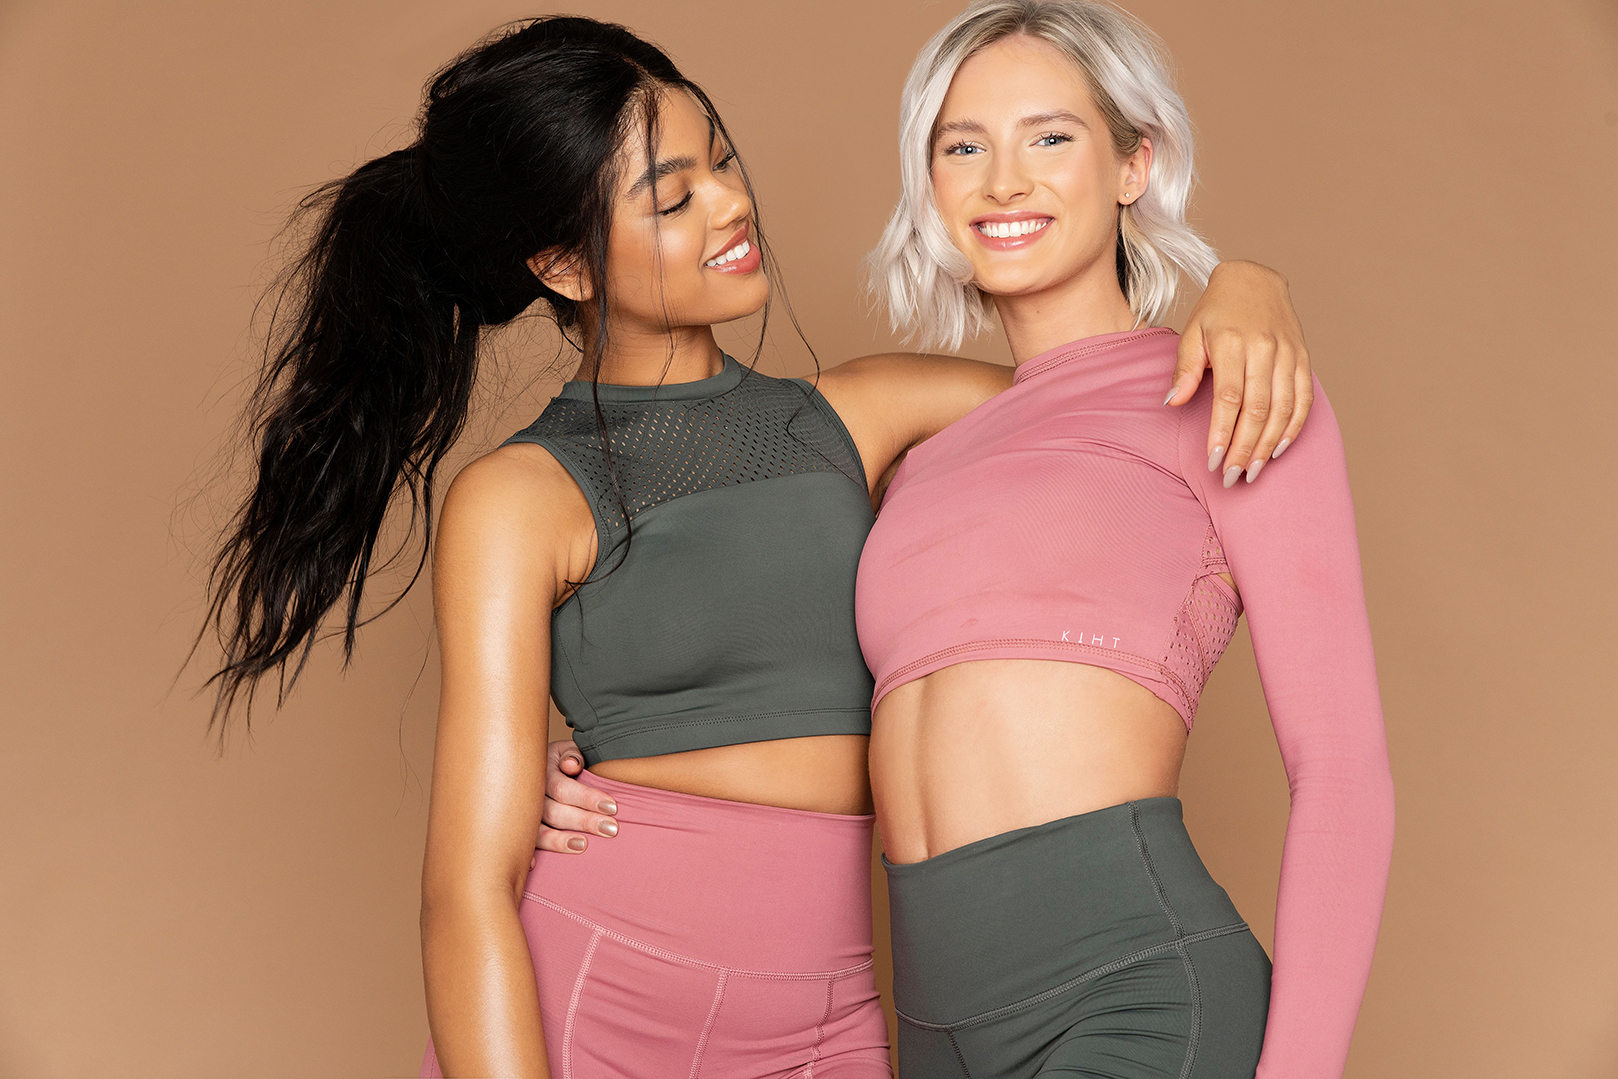 KIHT: The Manchester activewear brand selling ethical gymwear, The Manc